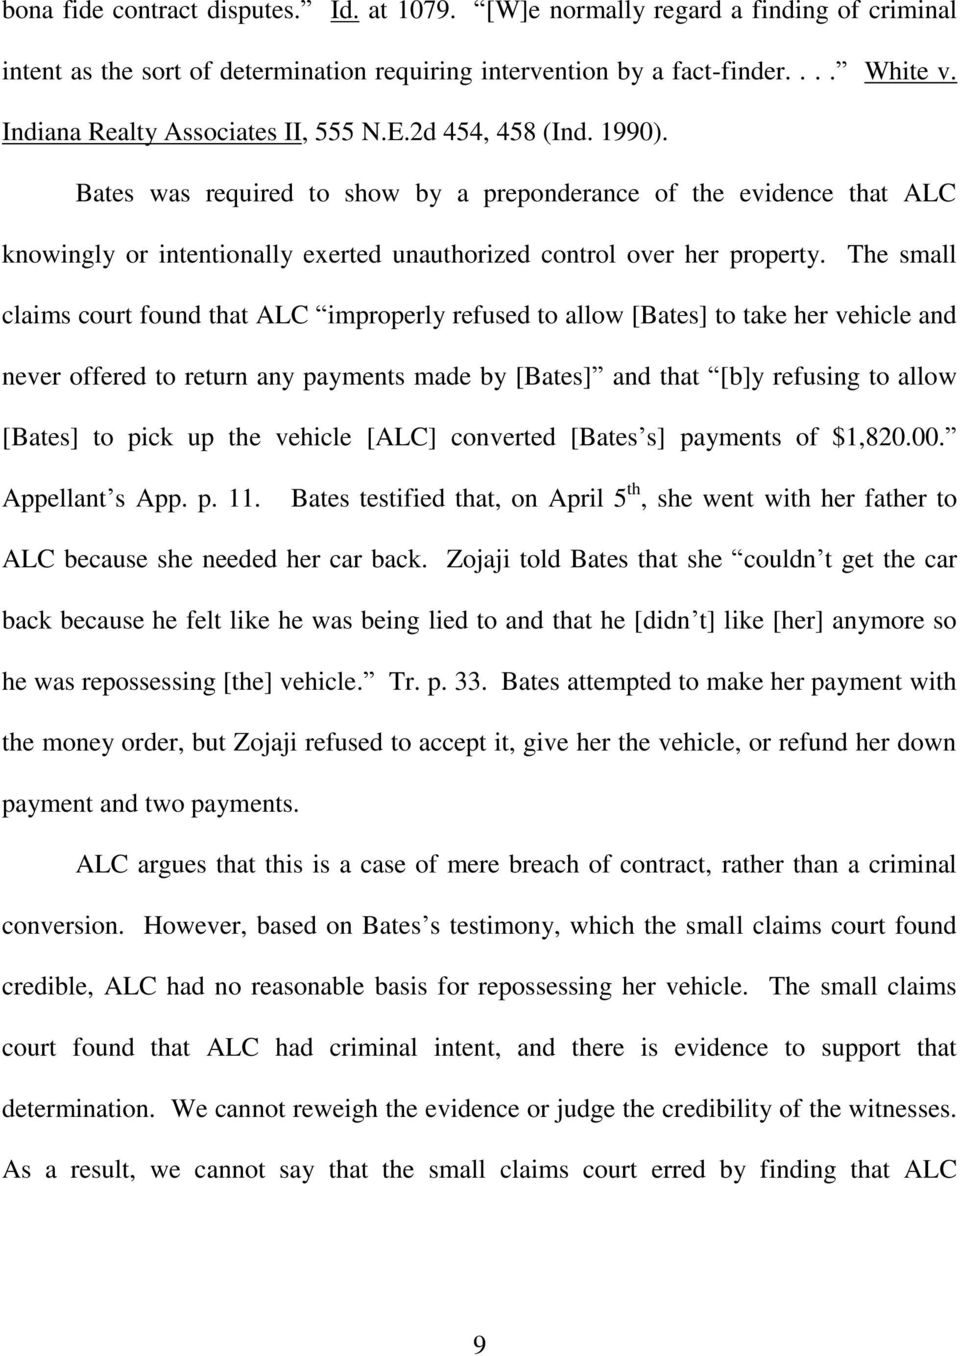 Bates was required to show by a preponderance of the evidence that ALC knowingly or intentionally exerted unauthorized control over her property.